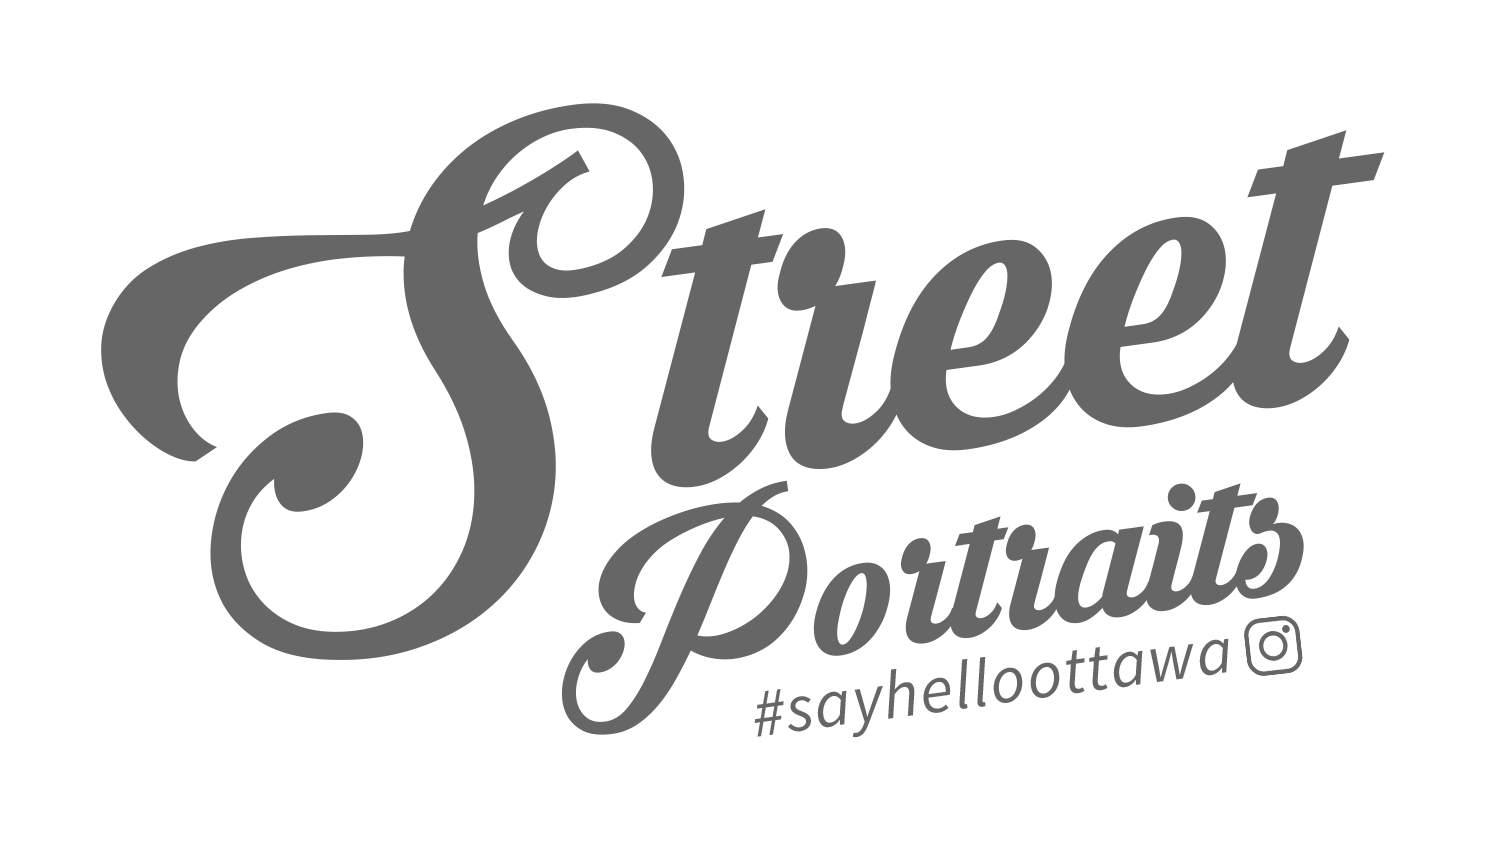 Squarespace Title Page Street Portrati Stickers Say Hello Ottawa.png